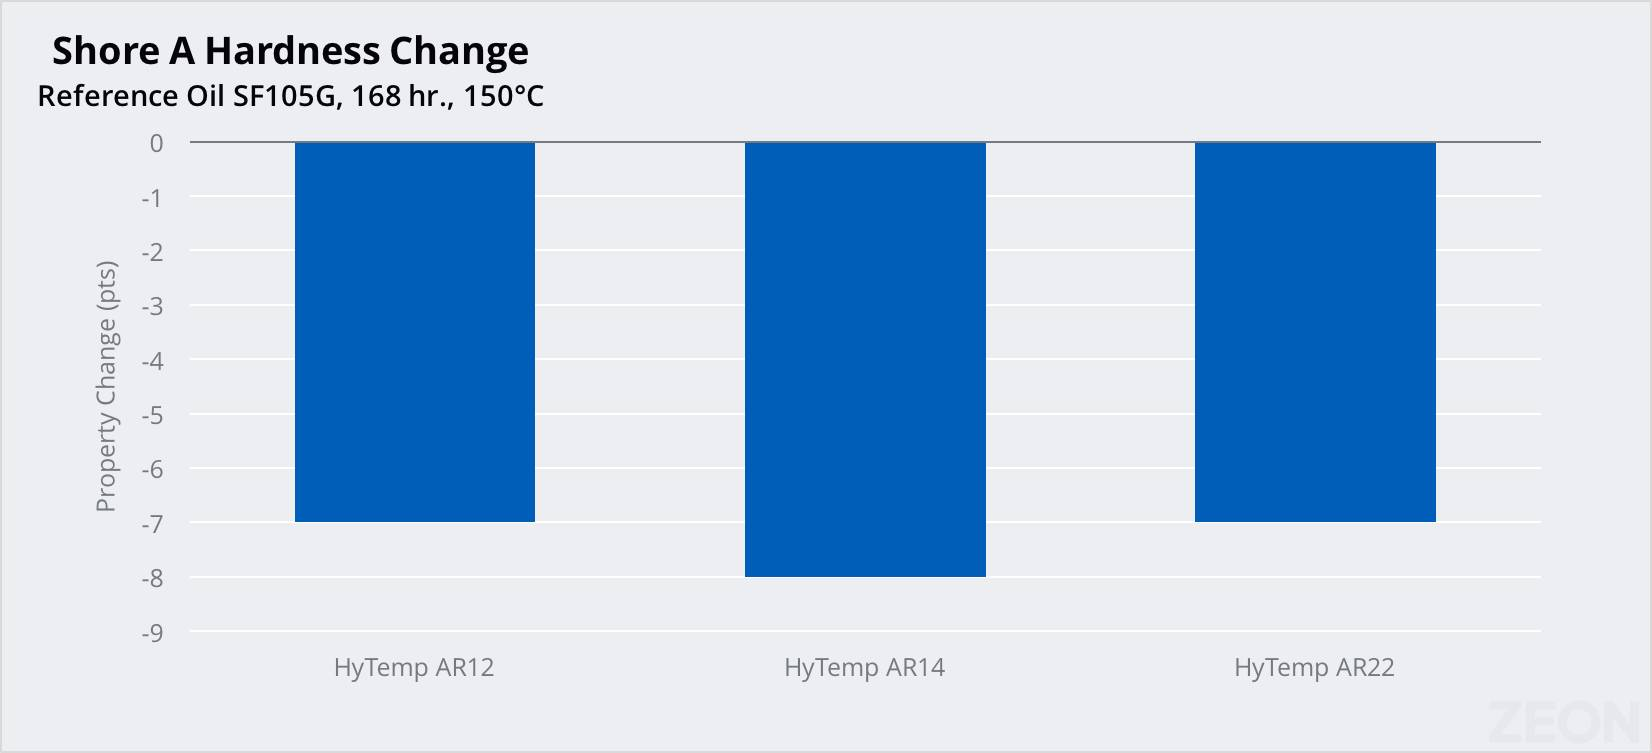 Chart showing zeon chemicals HyTemp oil resistance against hardness change